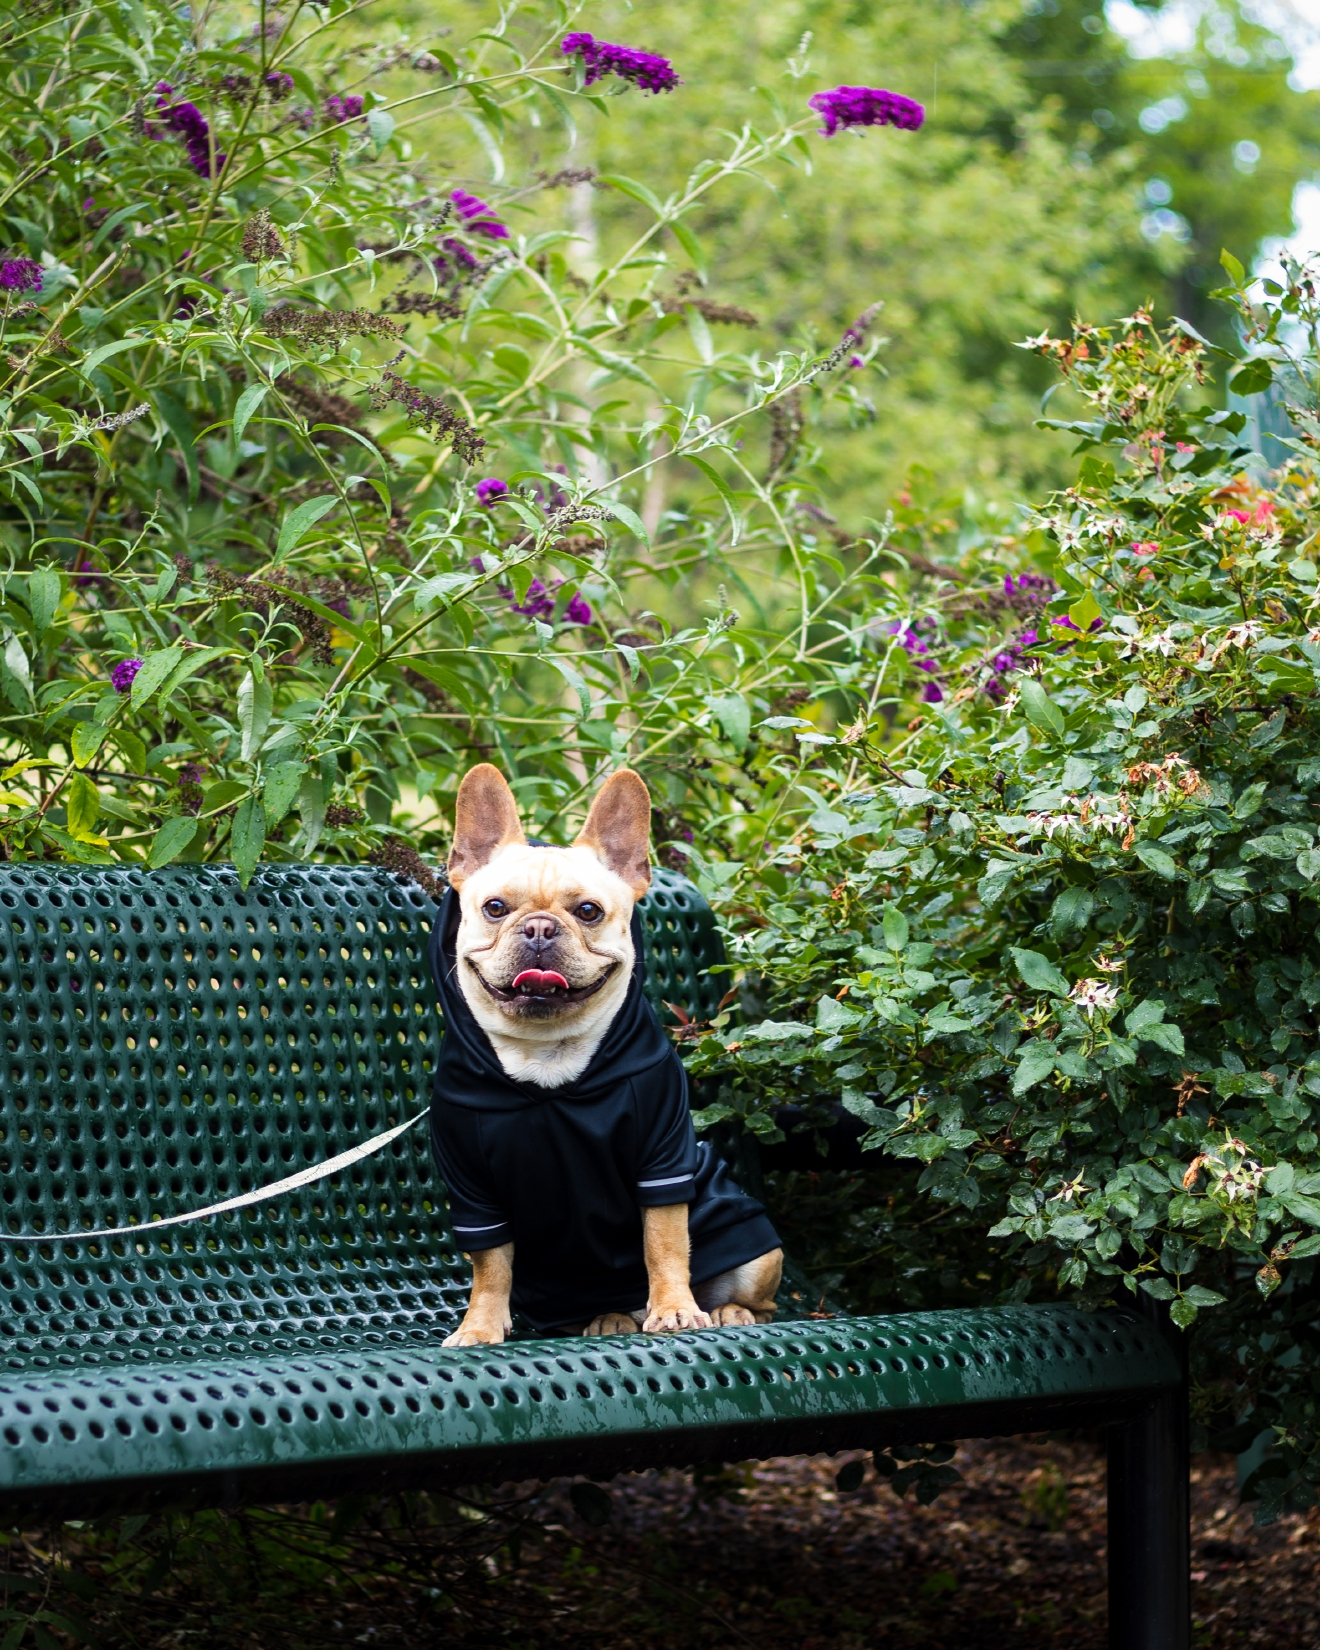 Meet Monsieur Mini Cooper (because he's stocky and compact like the car), an almost two-year-old French Bulldog whose furiends call him Coop. Cooper is part of a Frenchie meetup group that has hosted a minion party at Barrel Oak Winery, a Christmas photo shoot with 50 Frenchies in costumes and Cooper hosted his own first barkday party last March! He loves Fridays, lazy Sunday snuggles, filet mignon (medium rare of course) and hanging out in his teepee with a crisp glass of Riesling  -- or wait, maybe that's mom! In his spare time, Mini Coop is a puppy model for The French Dog (you can never have too many bow ties), Penn + Pooch dog apparel, Pupsaver and more. Find Coop on the 'gram @monsieurcooper! If you or someone you know has a pet you'd like featured, email us at dcrefined@gmail.com or tag #DCRUFFined and your furbaby could be the next spotlighted! (Image: Alicia Kerns)